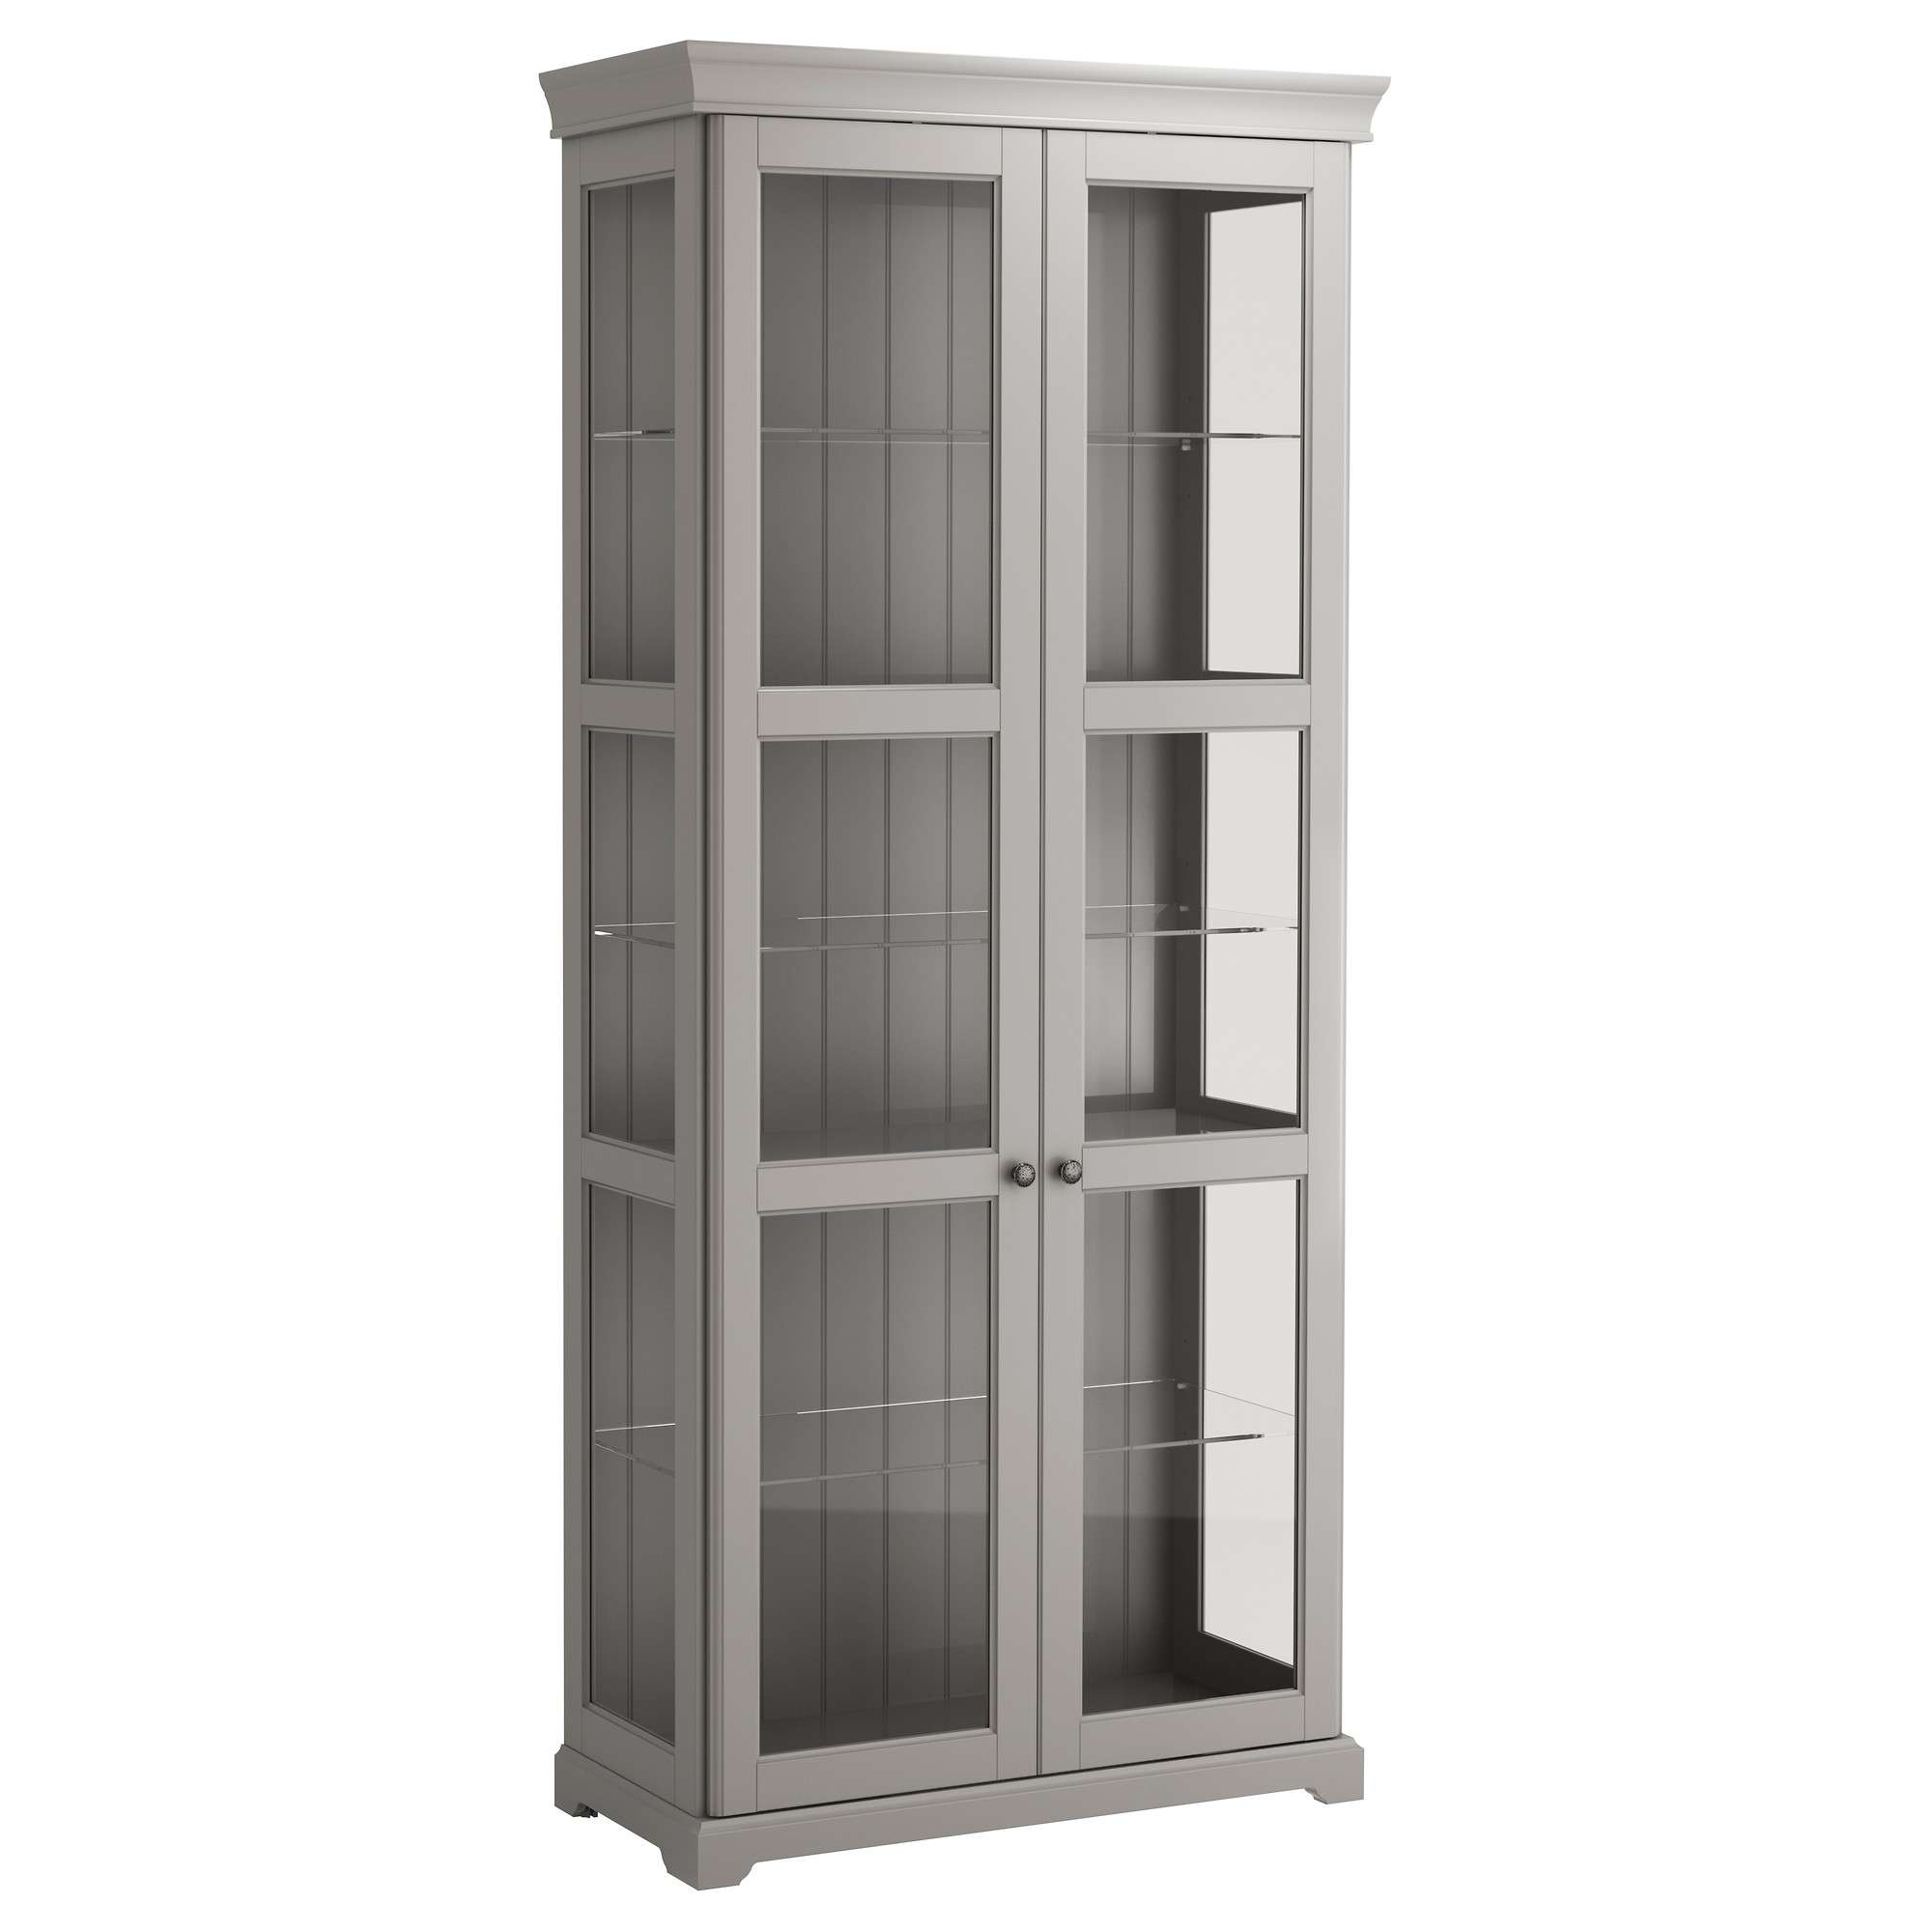 Liatorp Glass Door Cabinet Grey 96X214 Cm – Ikea With Regard To White Sideboards With Glass Doors (View 9 of 20)